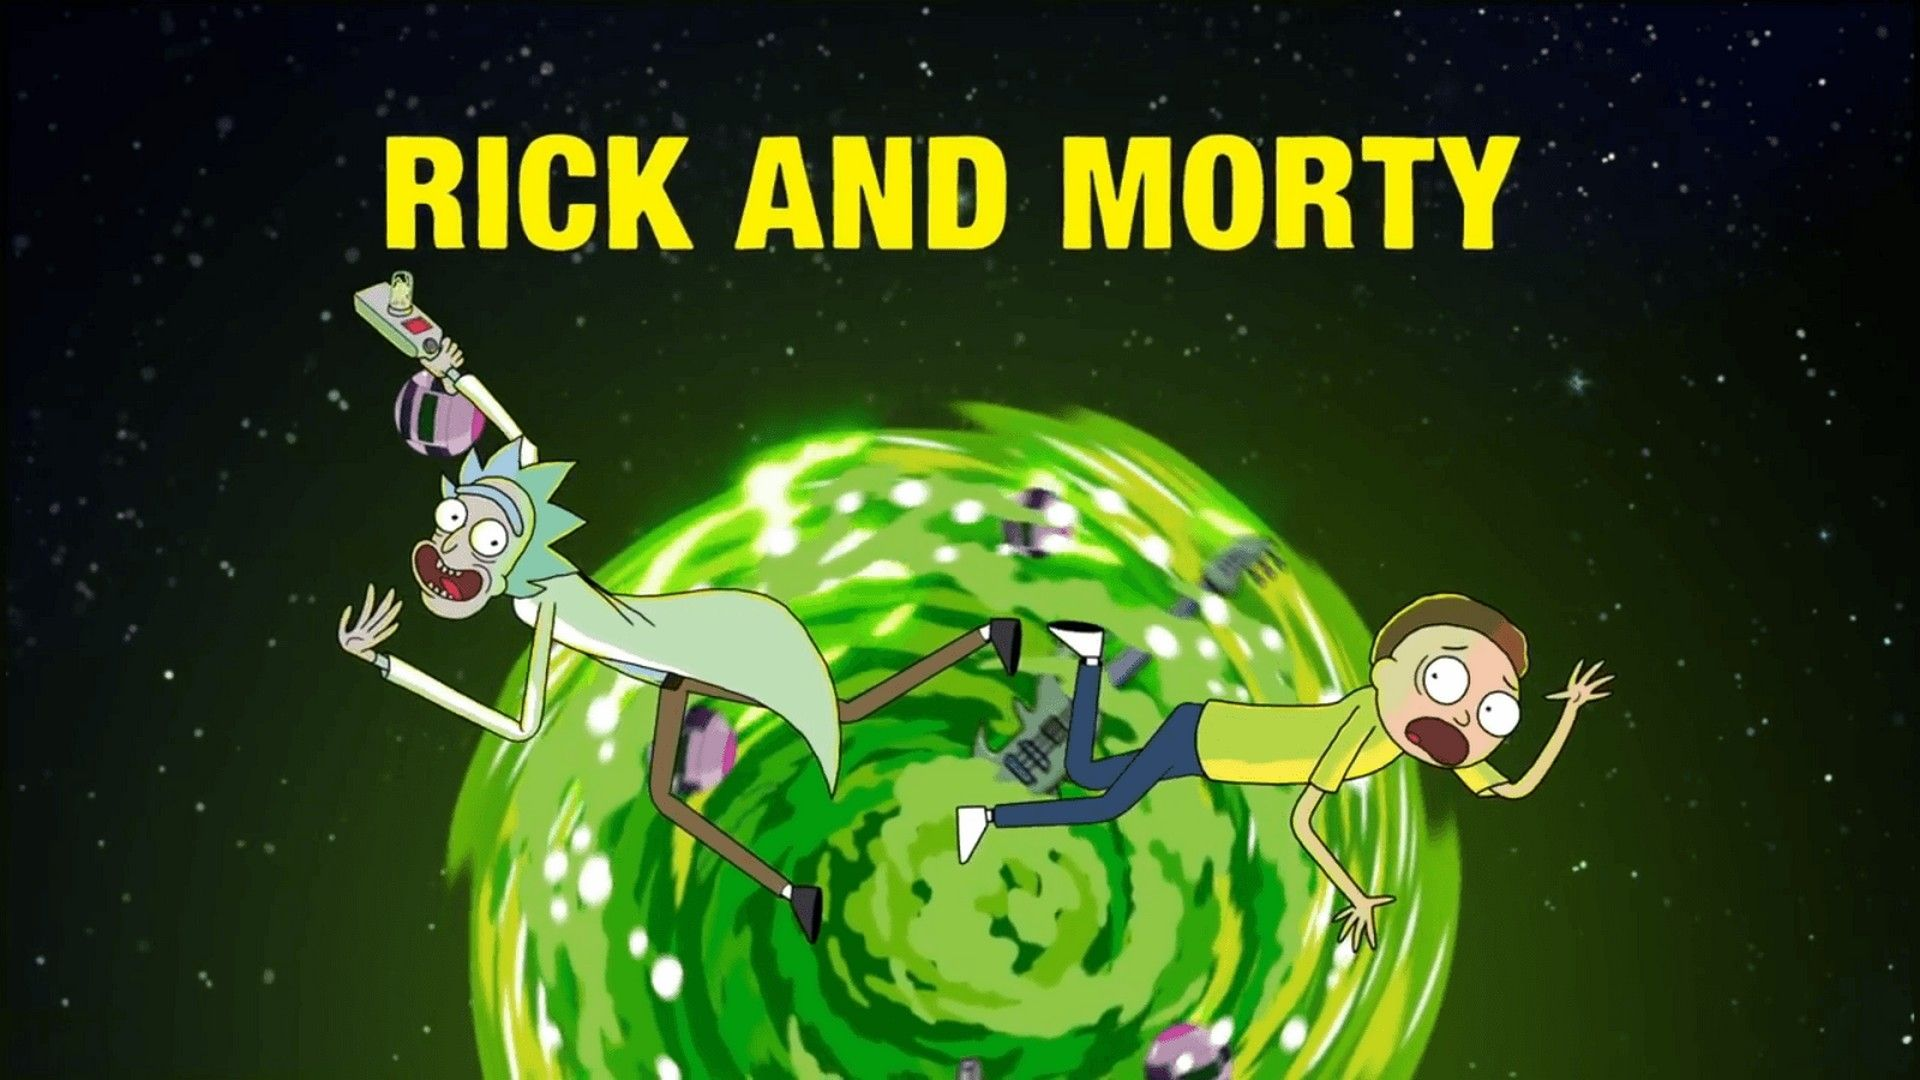 Download Rick And Morty Desktop Wallpaper Hd Backgrounds Download Itl Cat